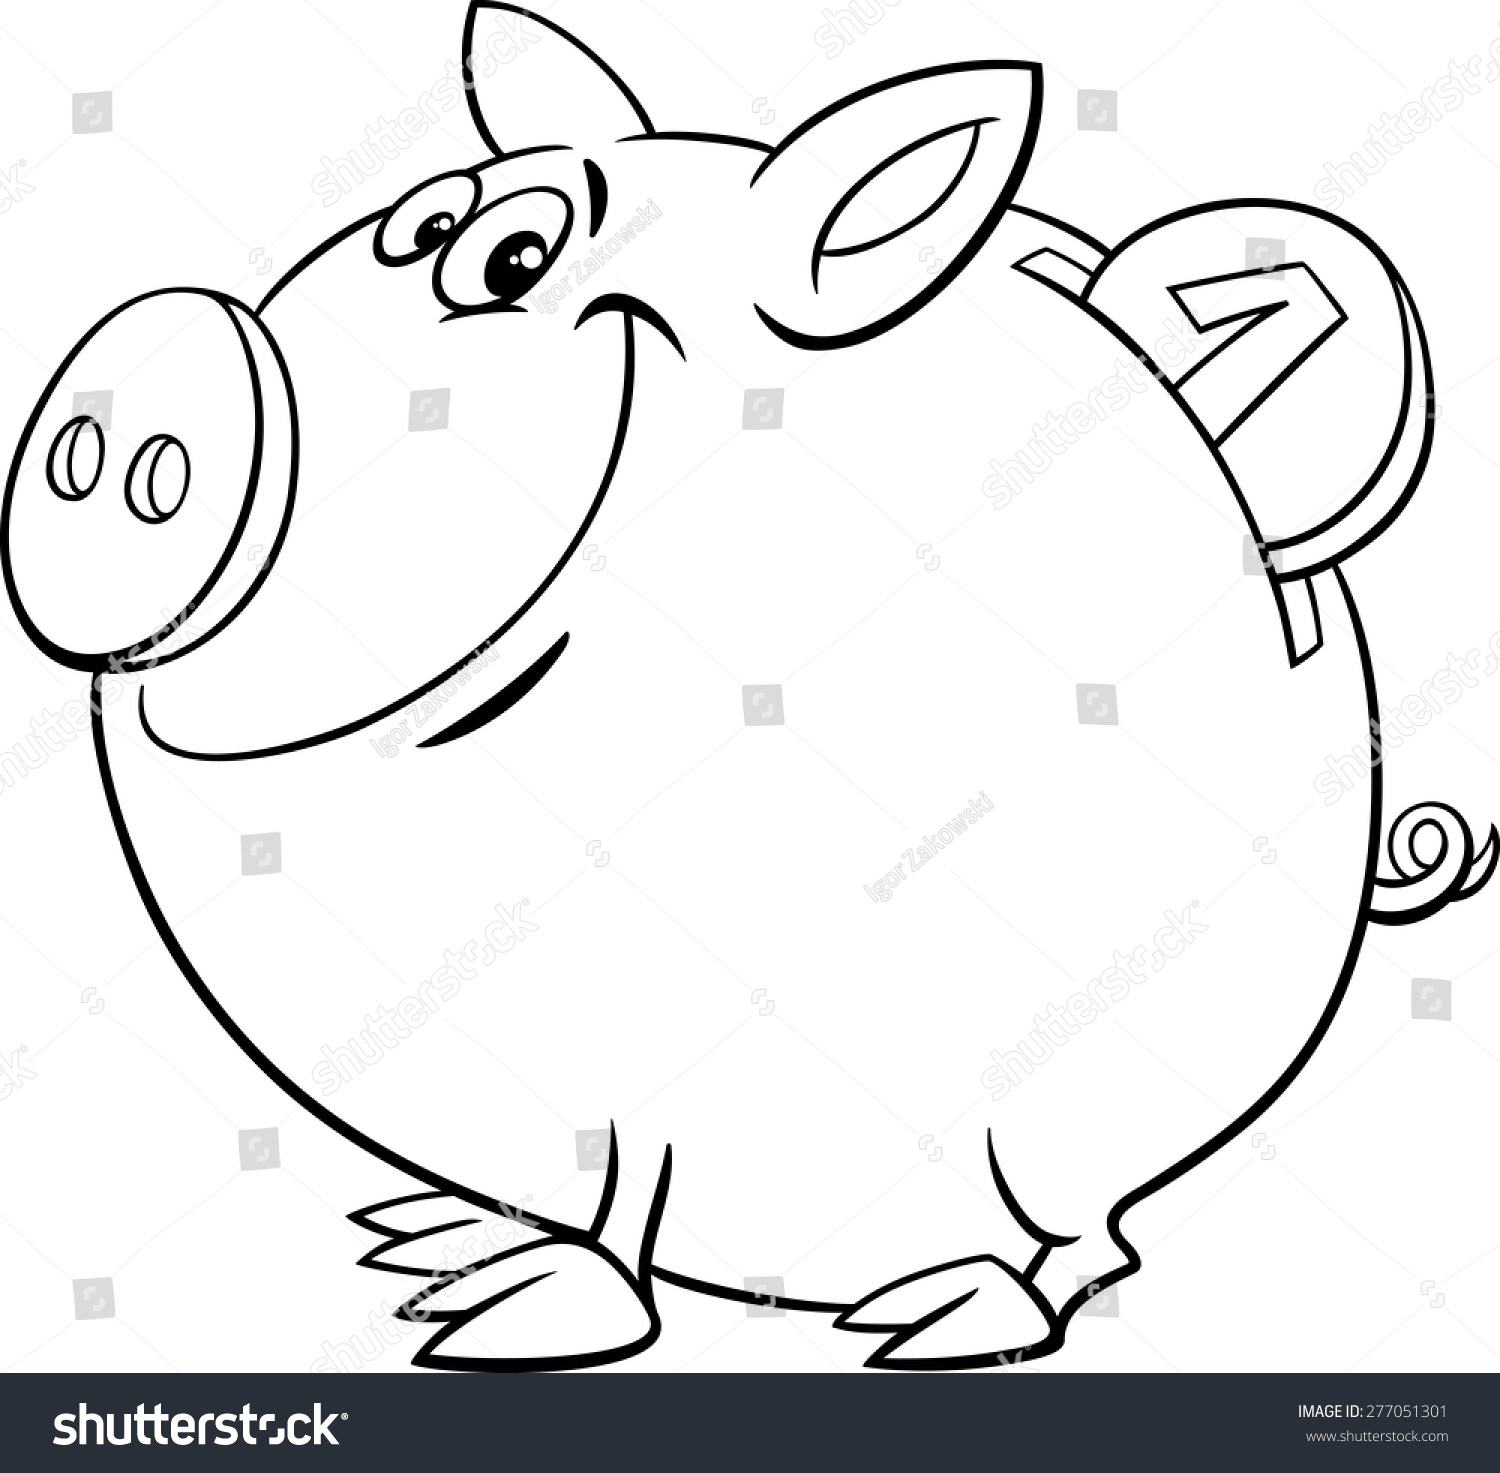 Black And White Cartoon Vector Illustration Of Cute Piggy ...